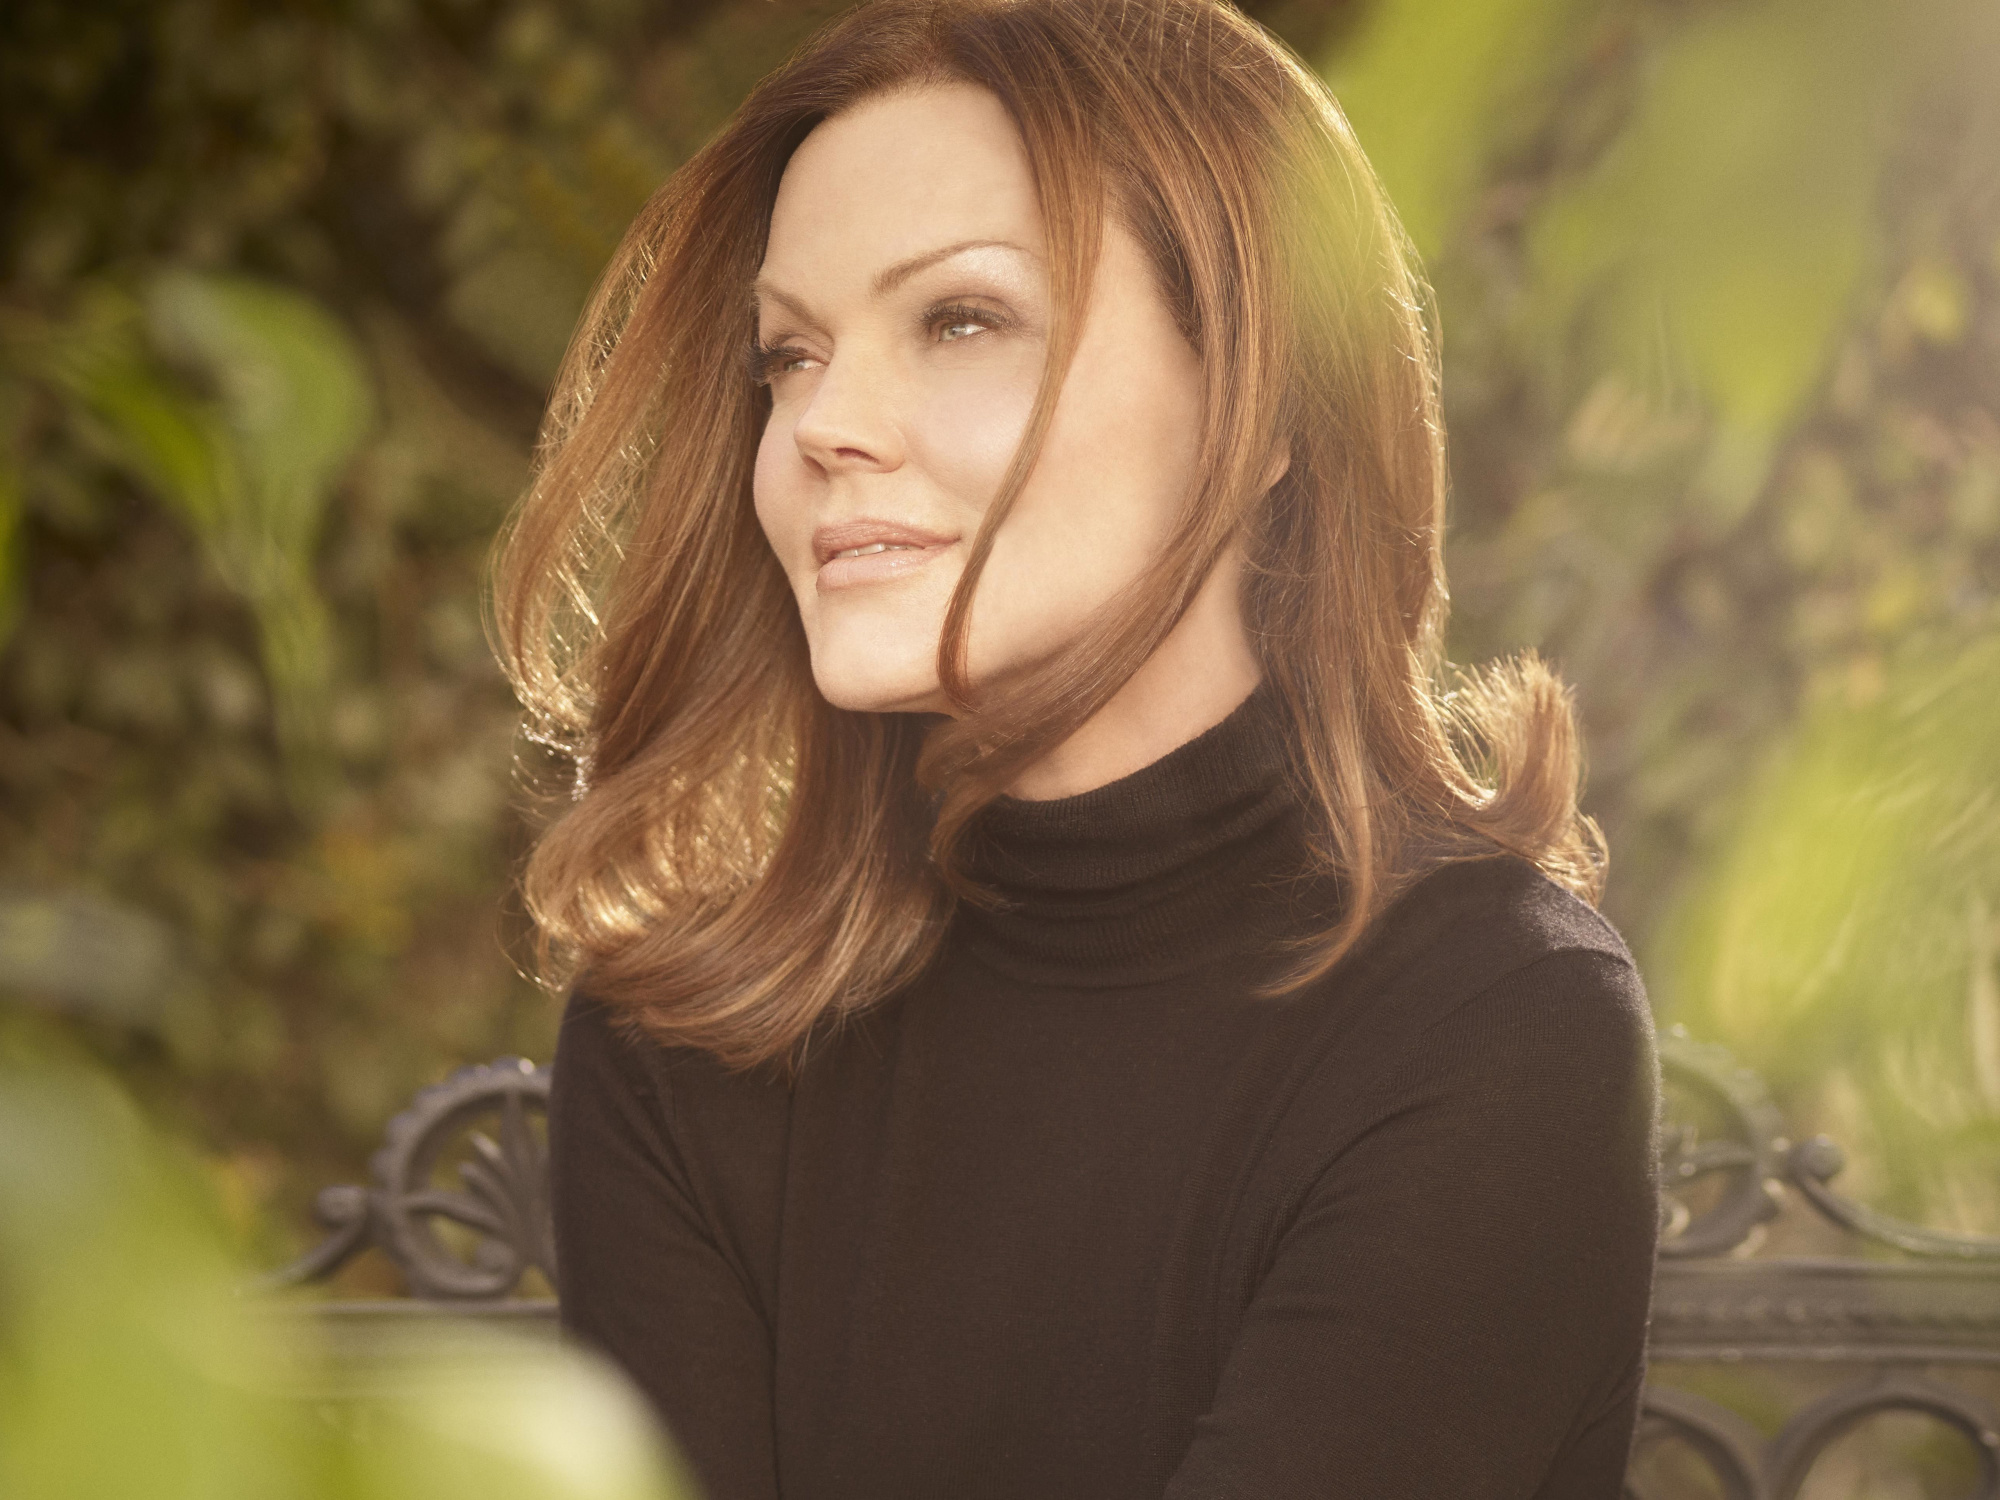 belinda carlisle wallpapers images photos pictures backgrounds